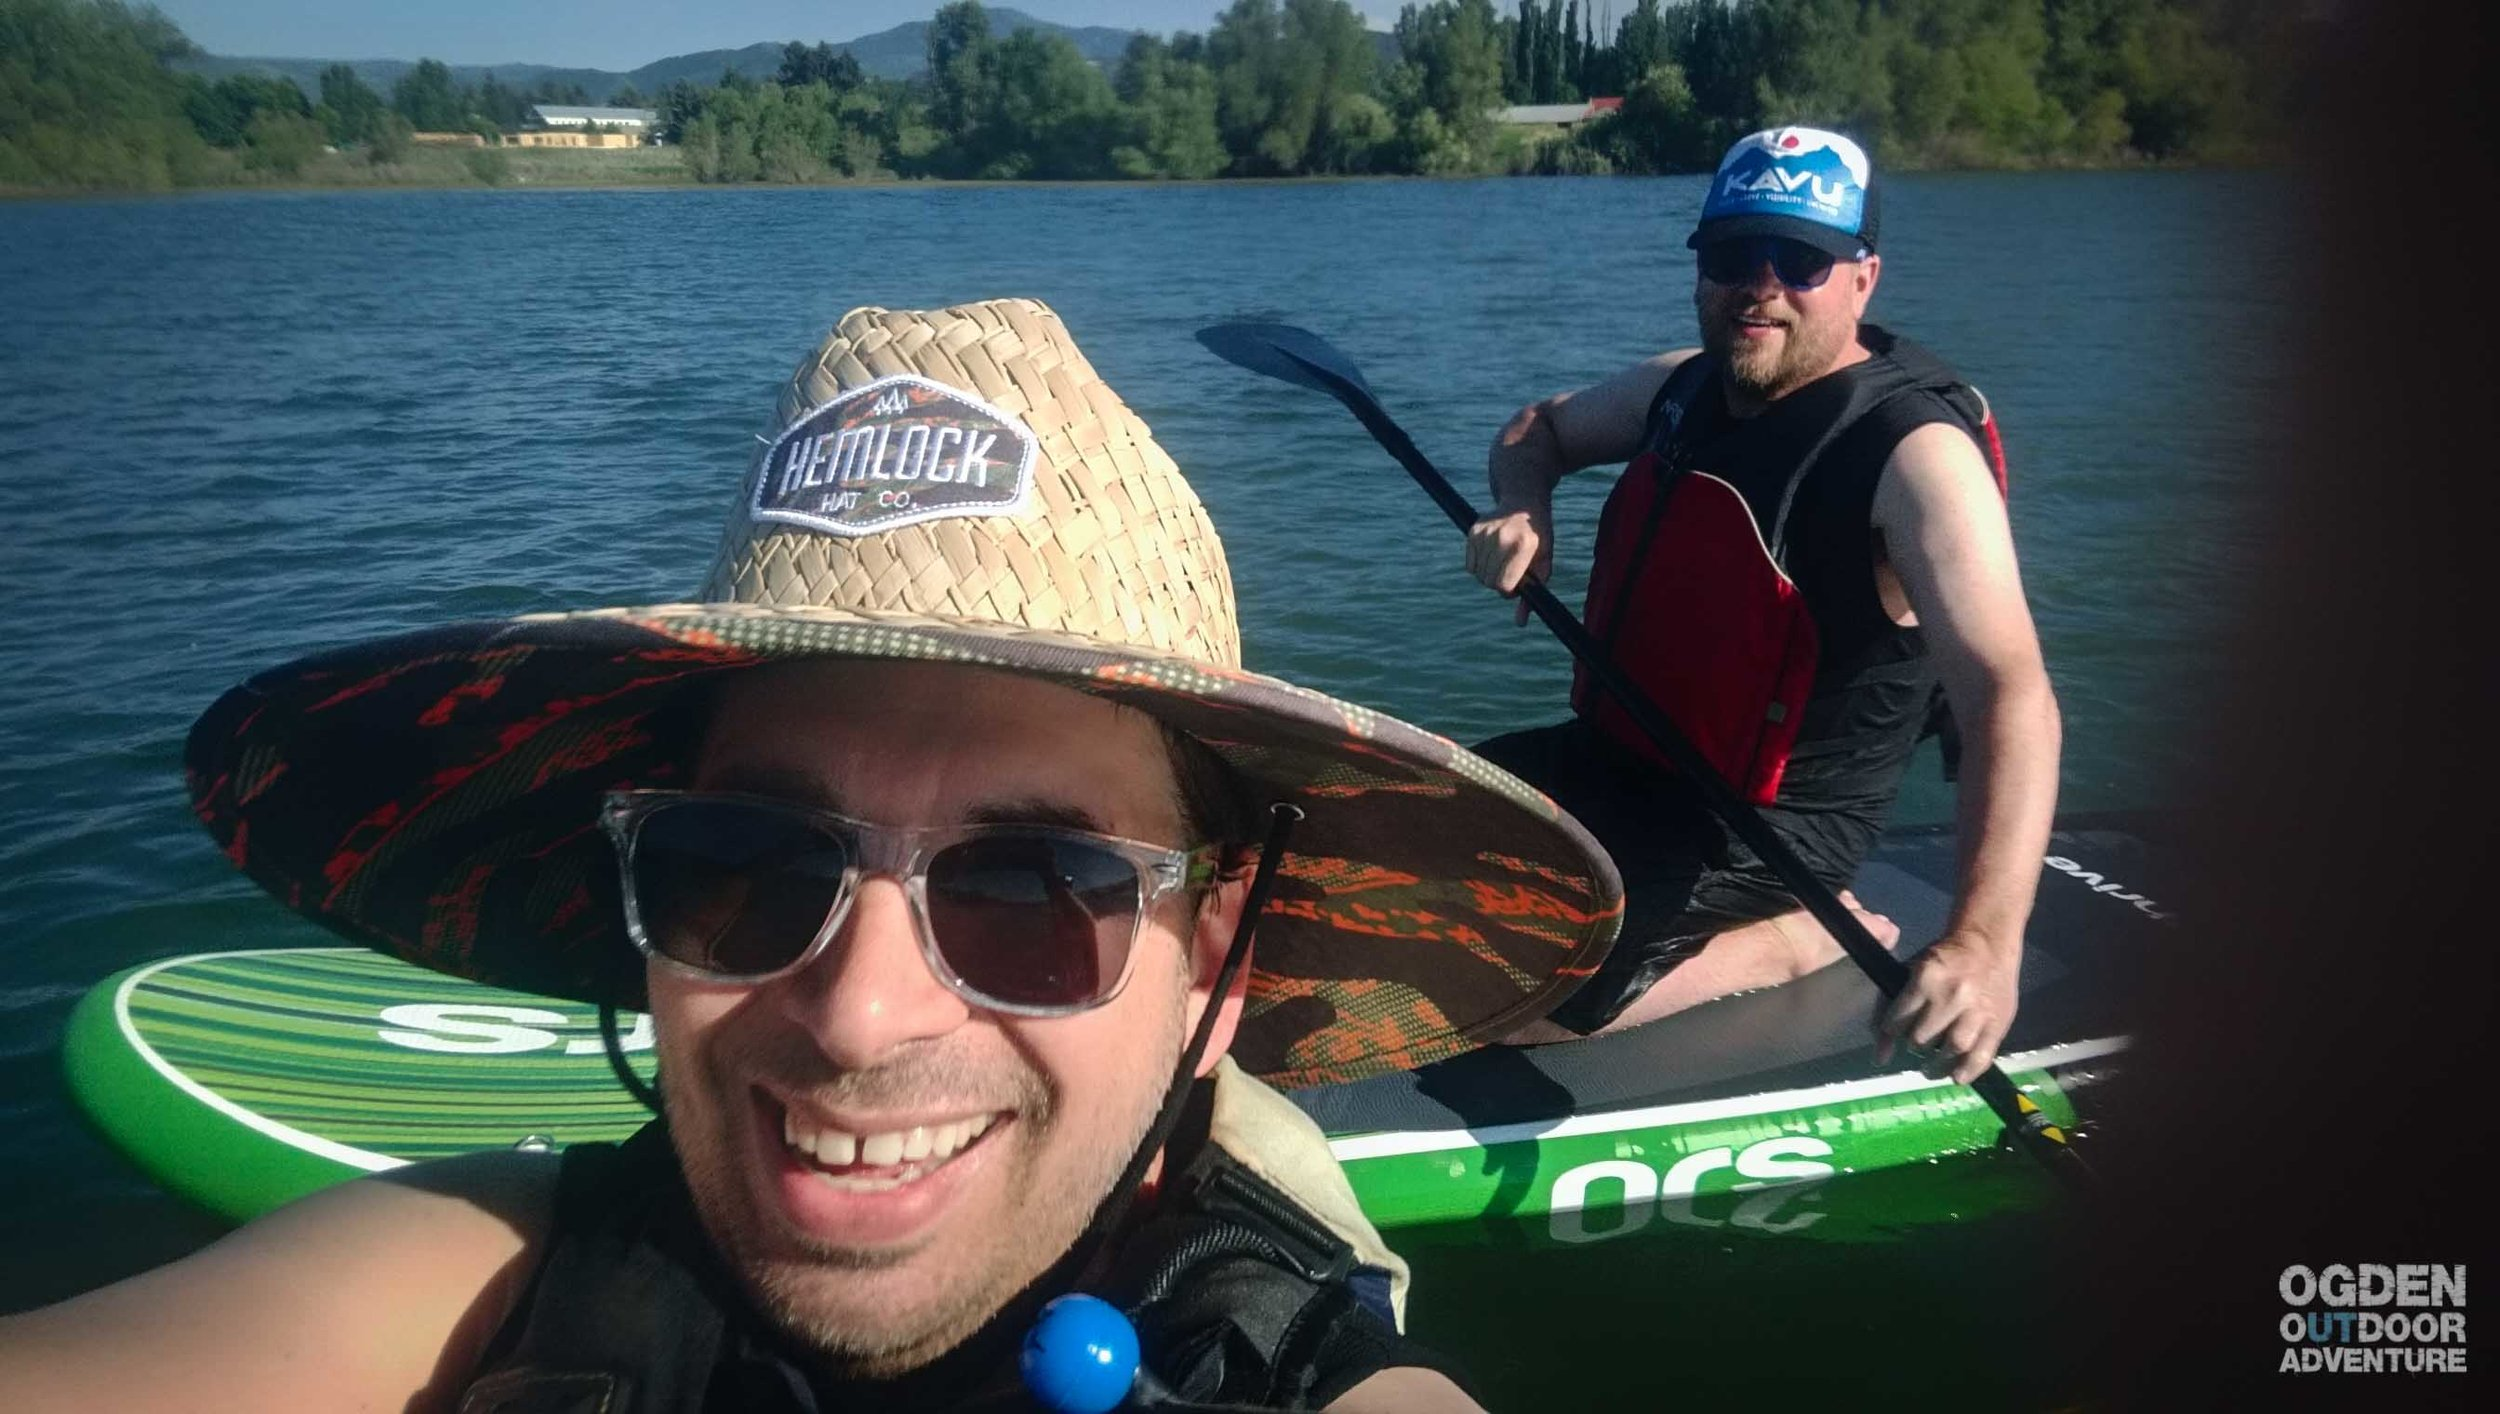 Us SUP'ing. Oh, and I LOVE my new Hemlock hat!! It sometimes bumps against with my pfd, but otherwise, it's perfect for deflecting the sun.